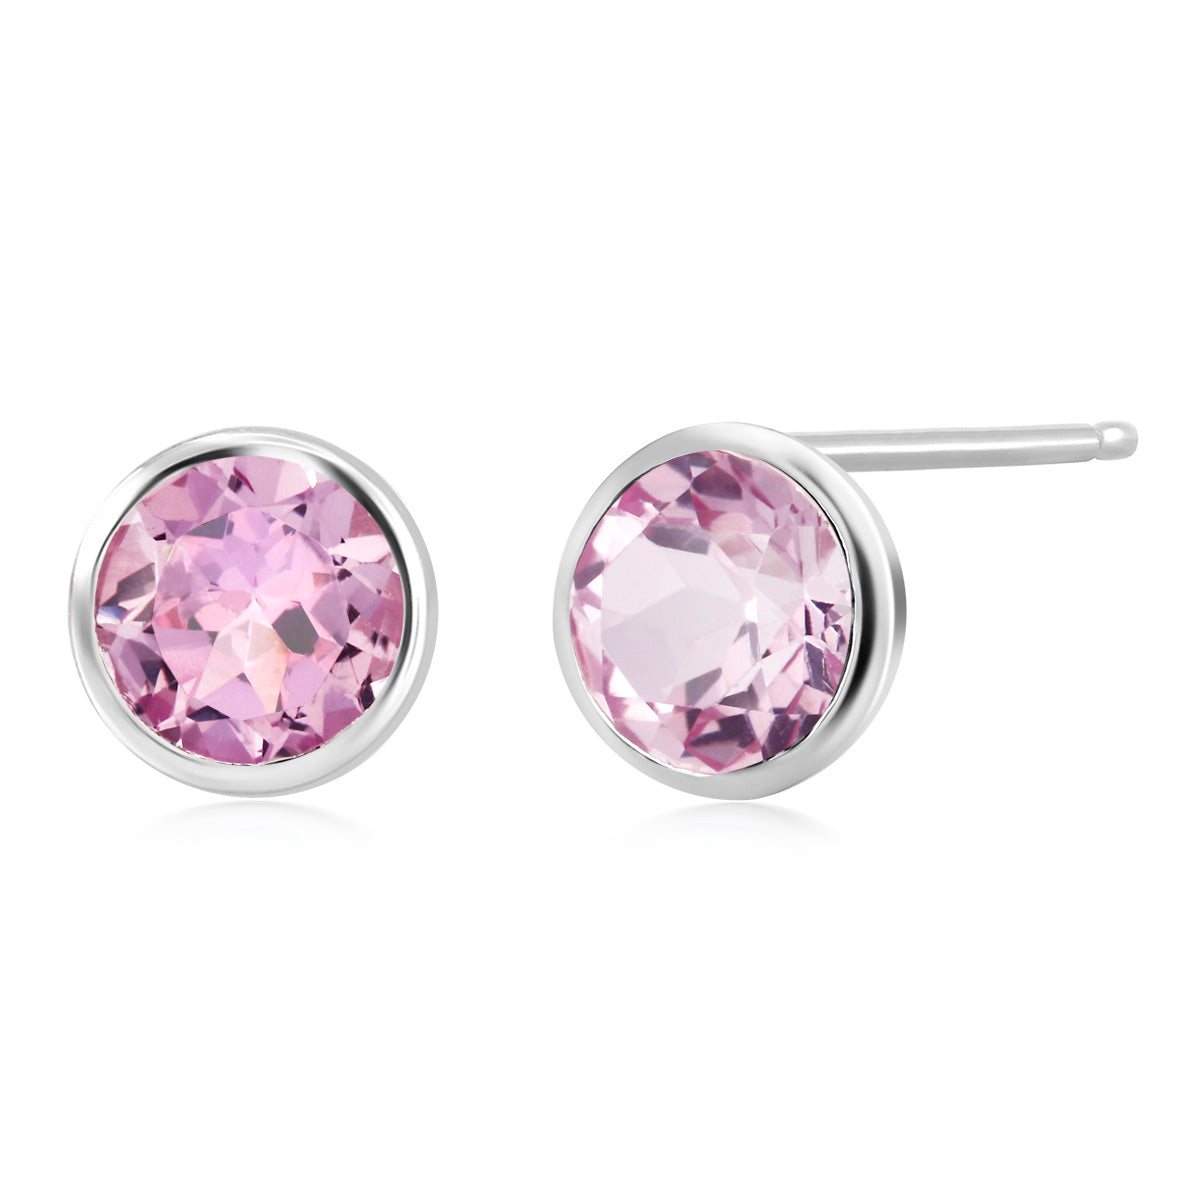 c4838ac7f Pink Topaz Bezel Set Stud Earring Weighing 3 Carat - Chillatto